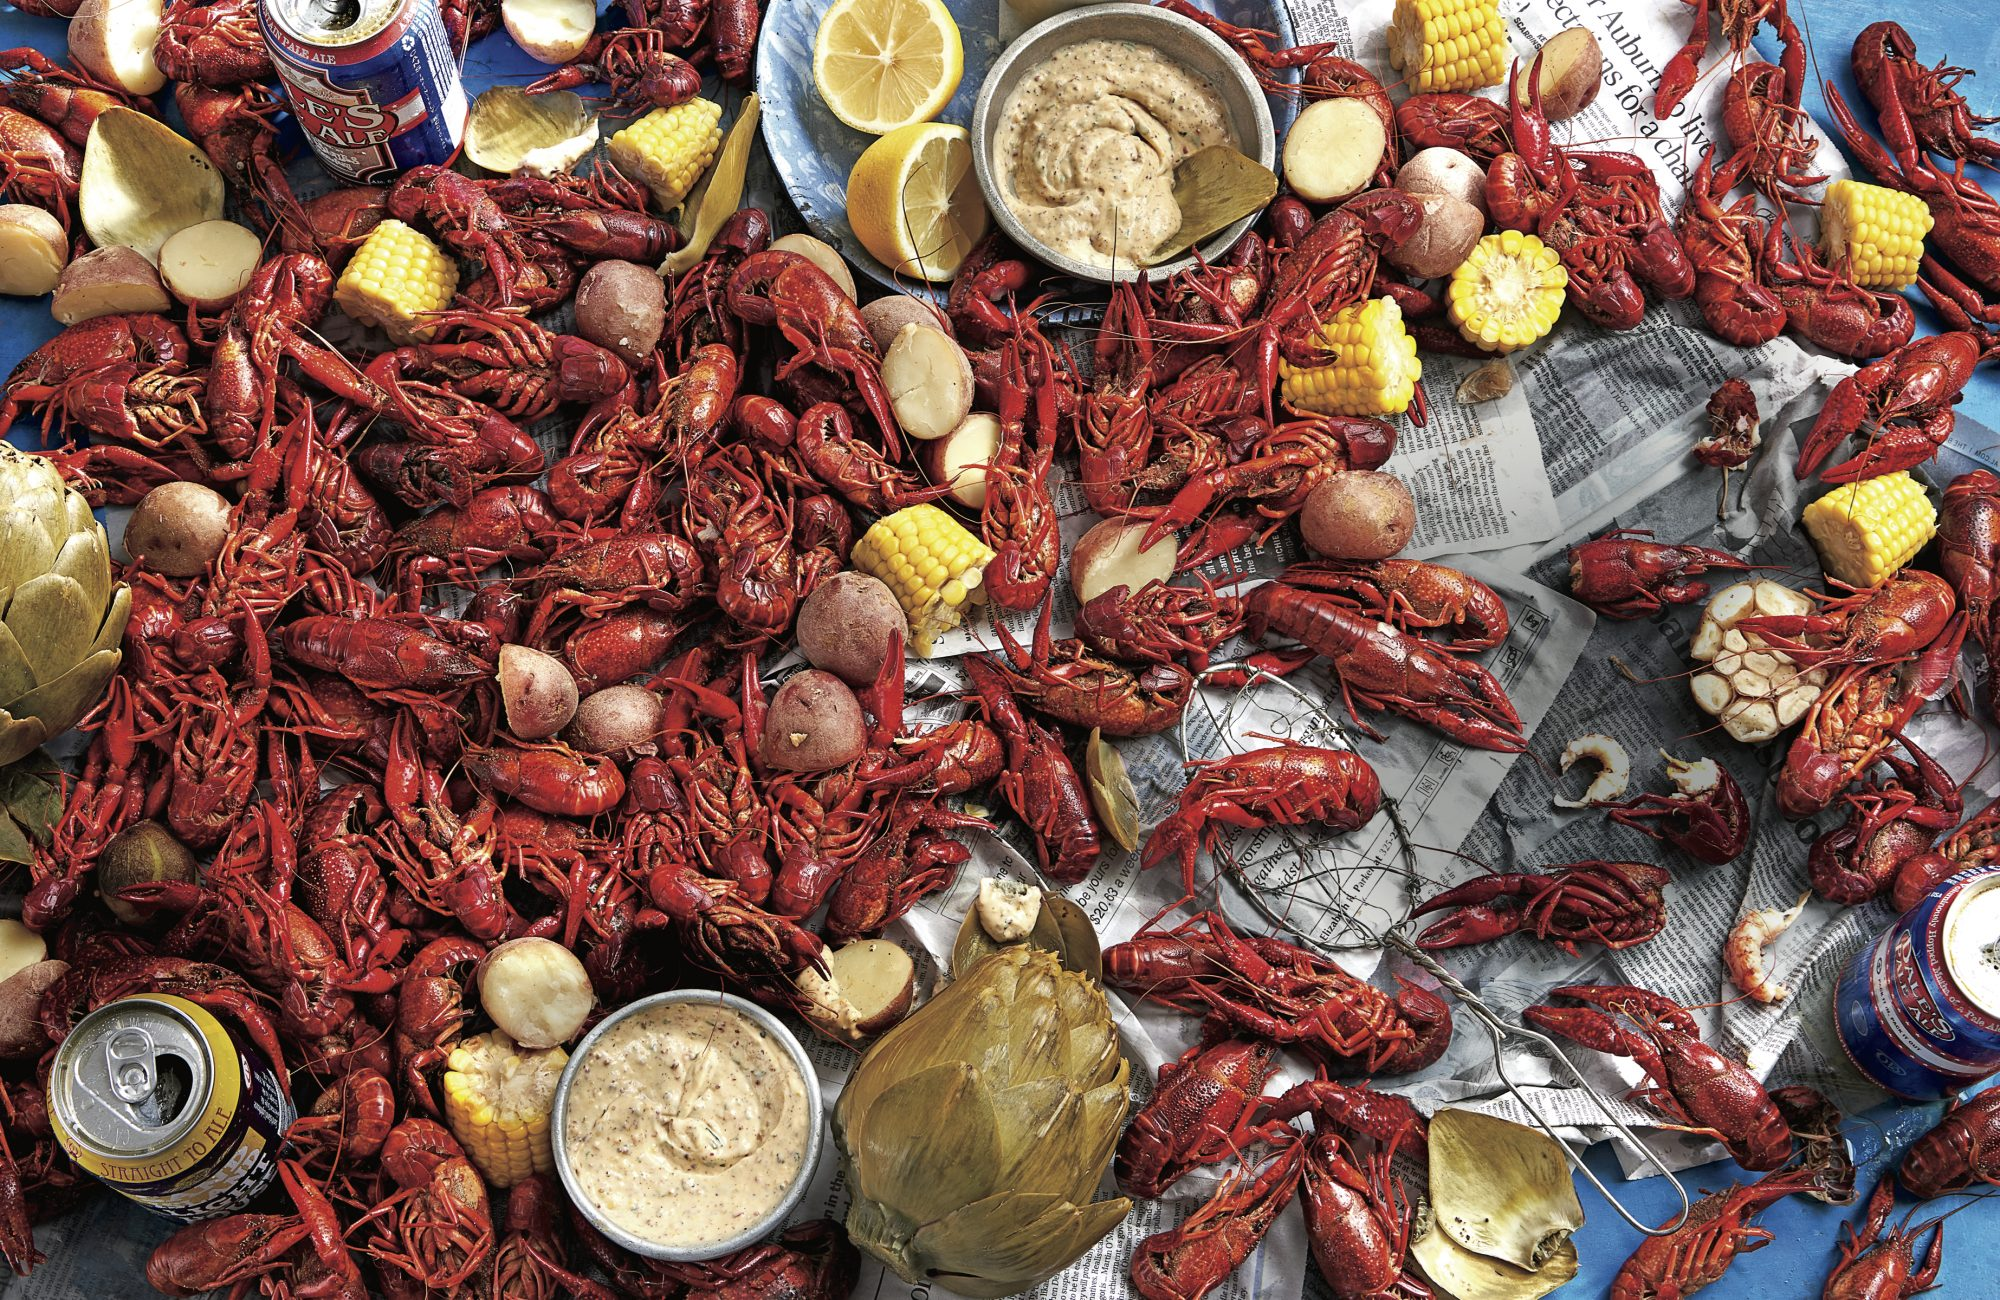 Springtime in the South Crawfish Season